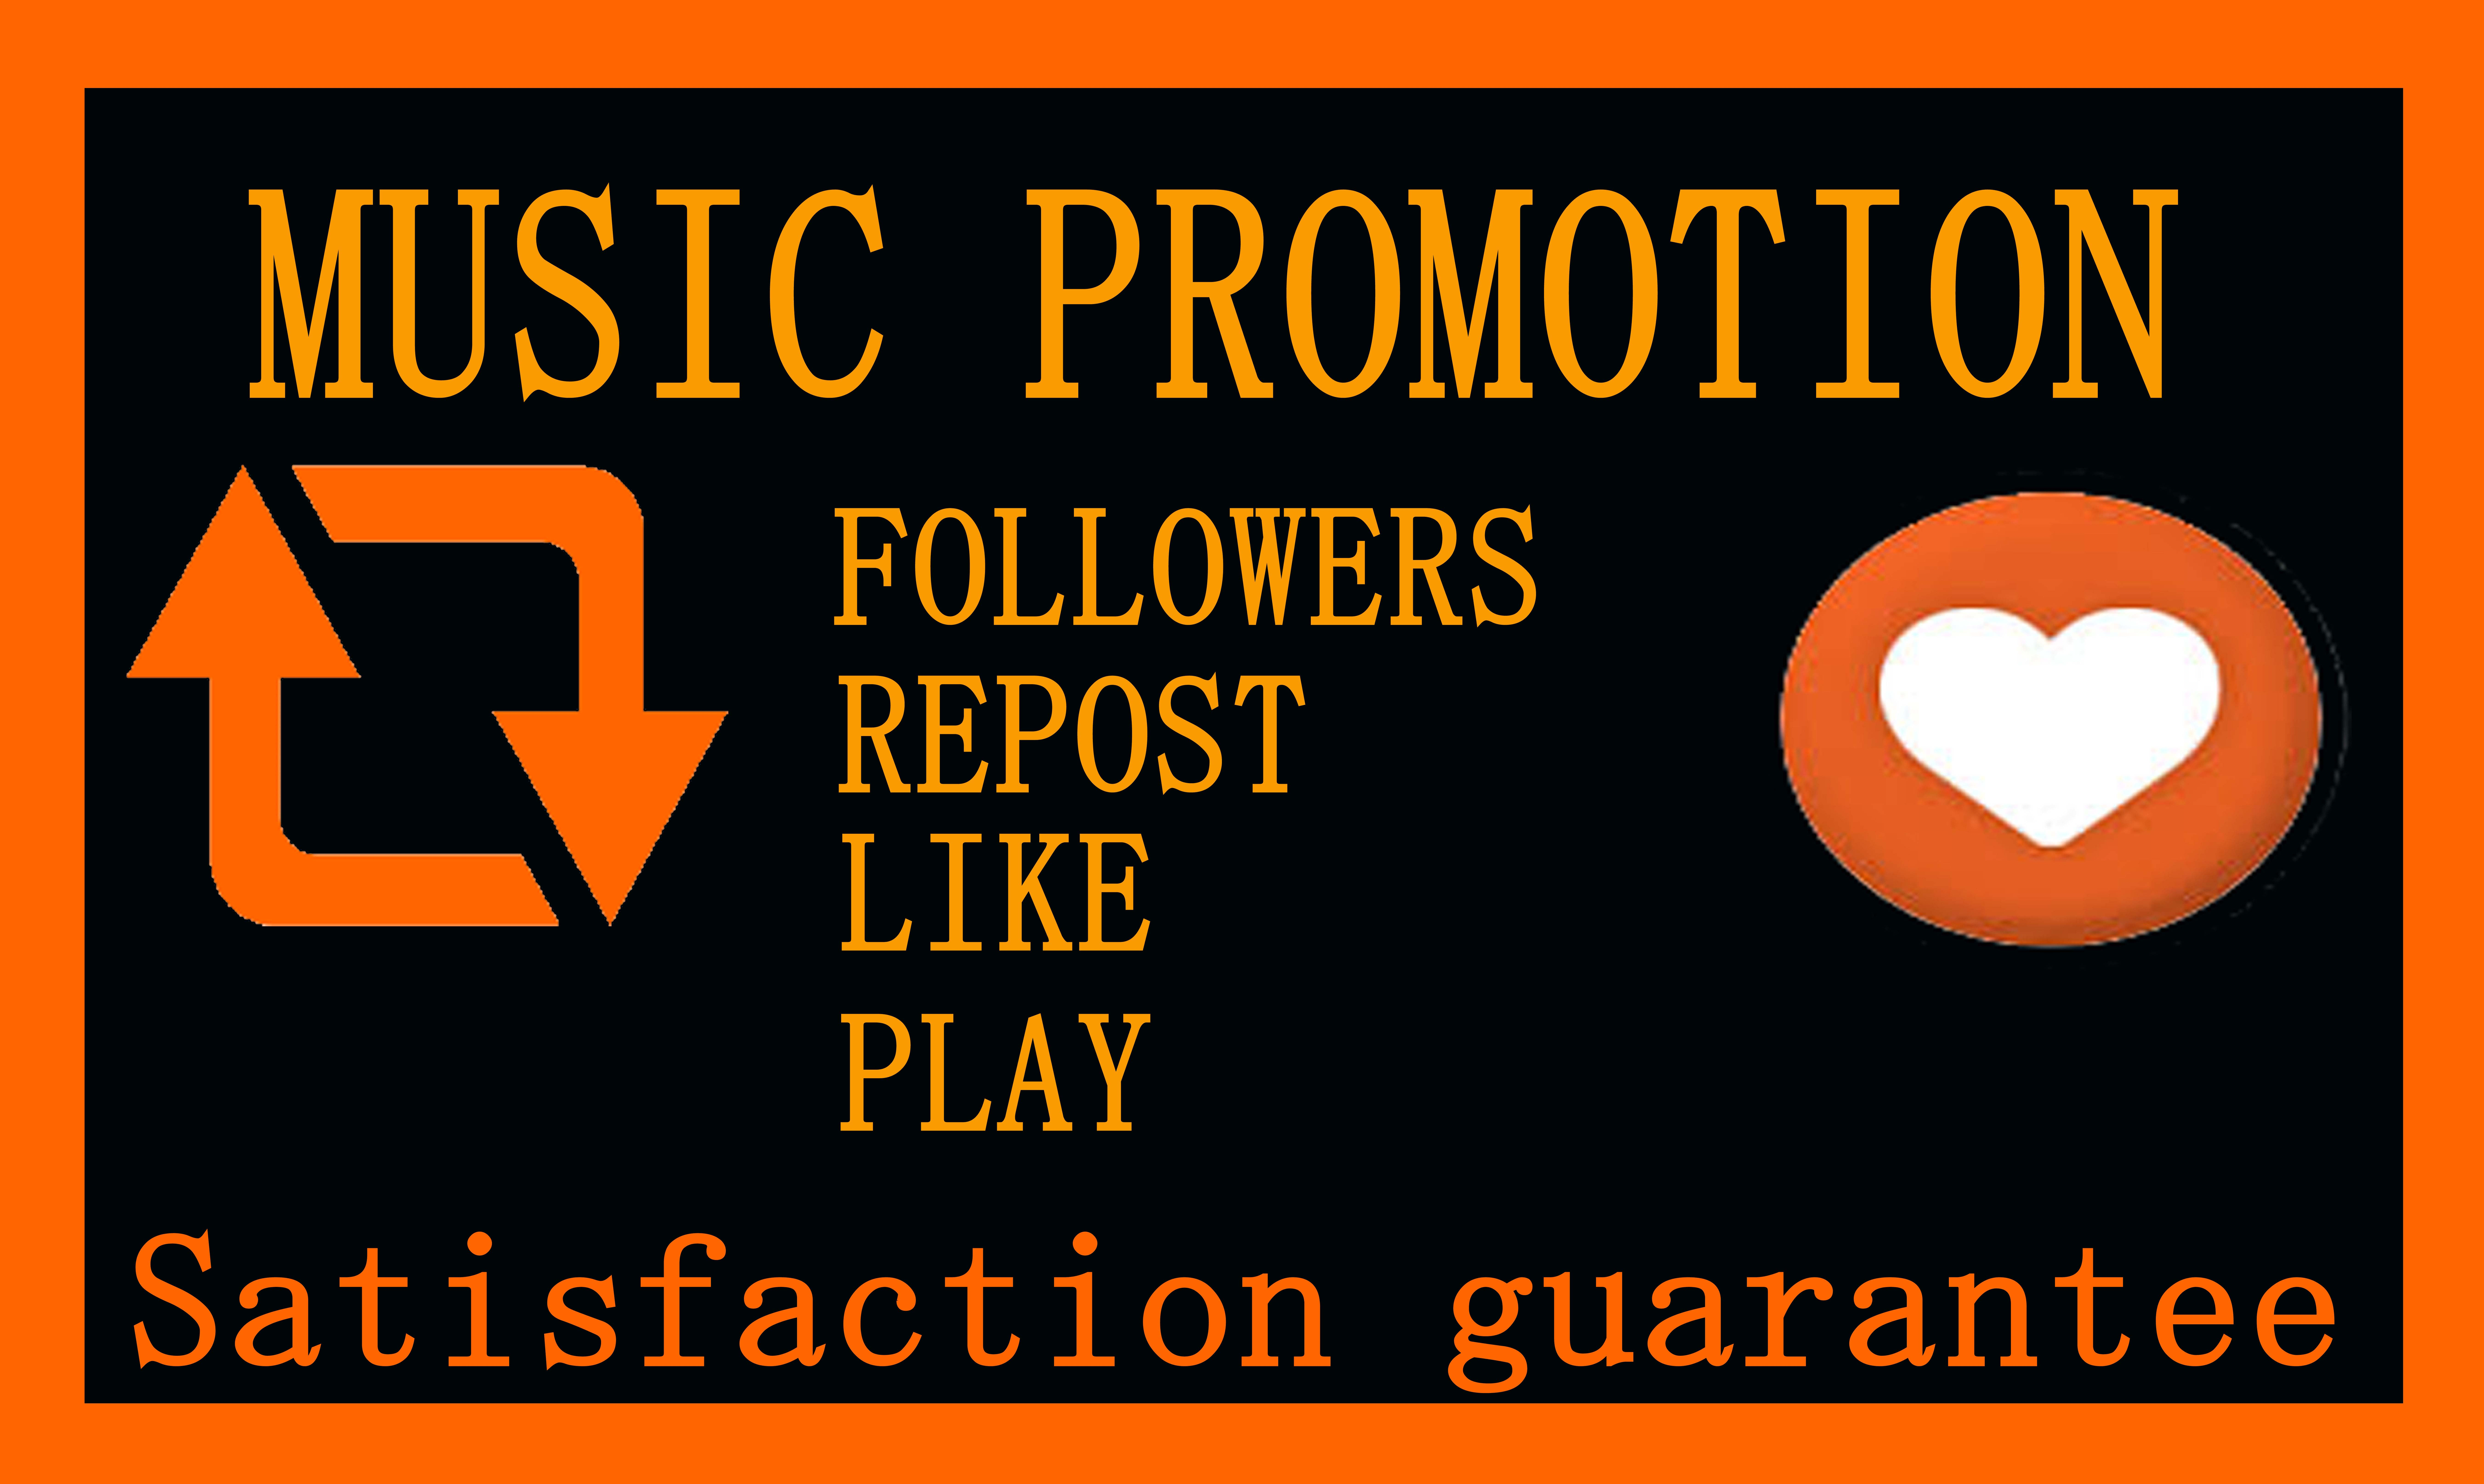 BEST MUSIC 200k PLAY PROMOTION